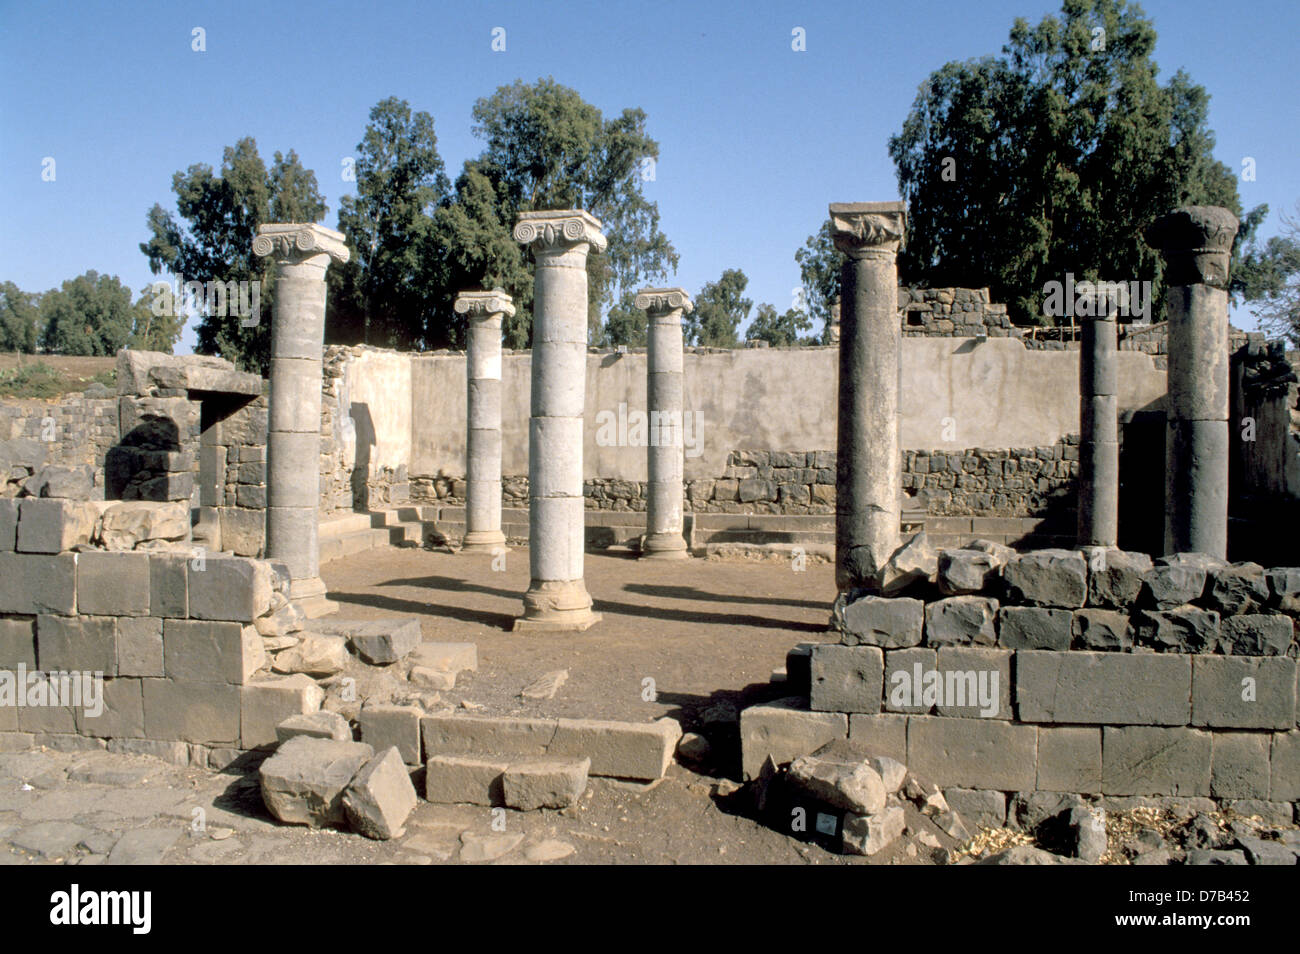 The Ancient Synagogue At kazerin - Stock Image